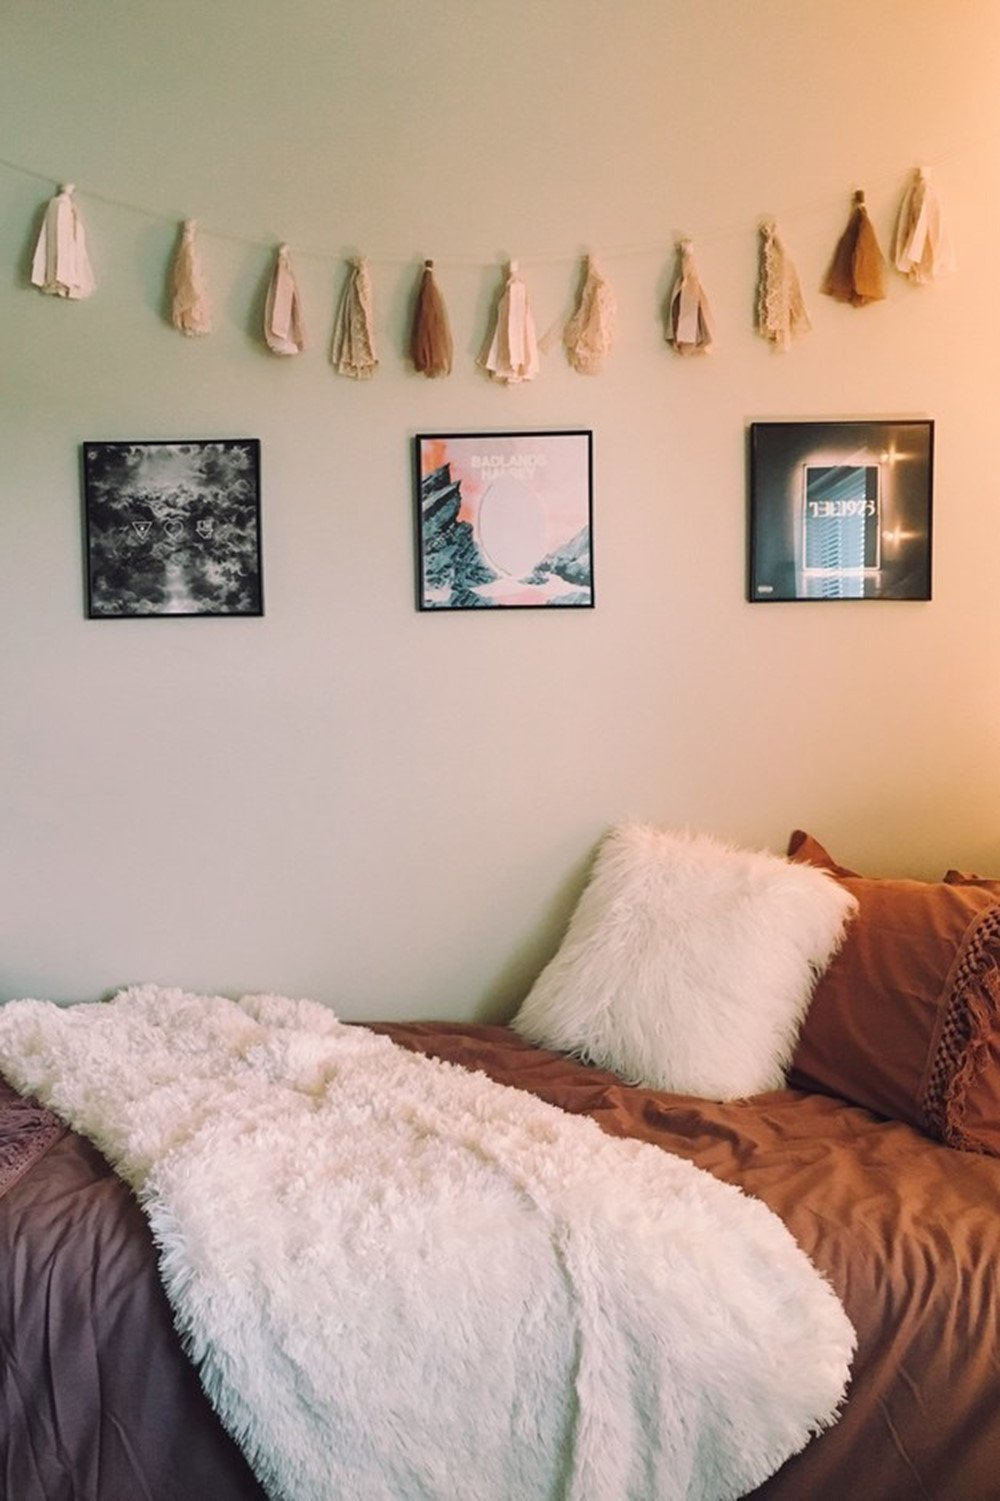 15 Minimalist Room Decor Ideas That'll Motivate You To Revamp Your Room This Weekend